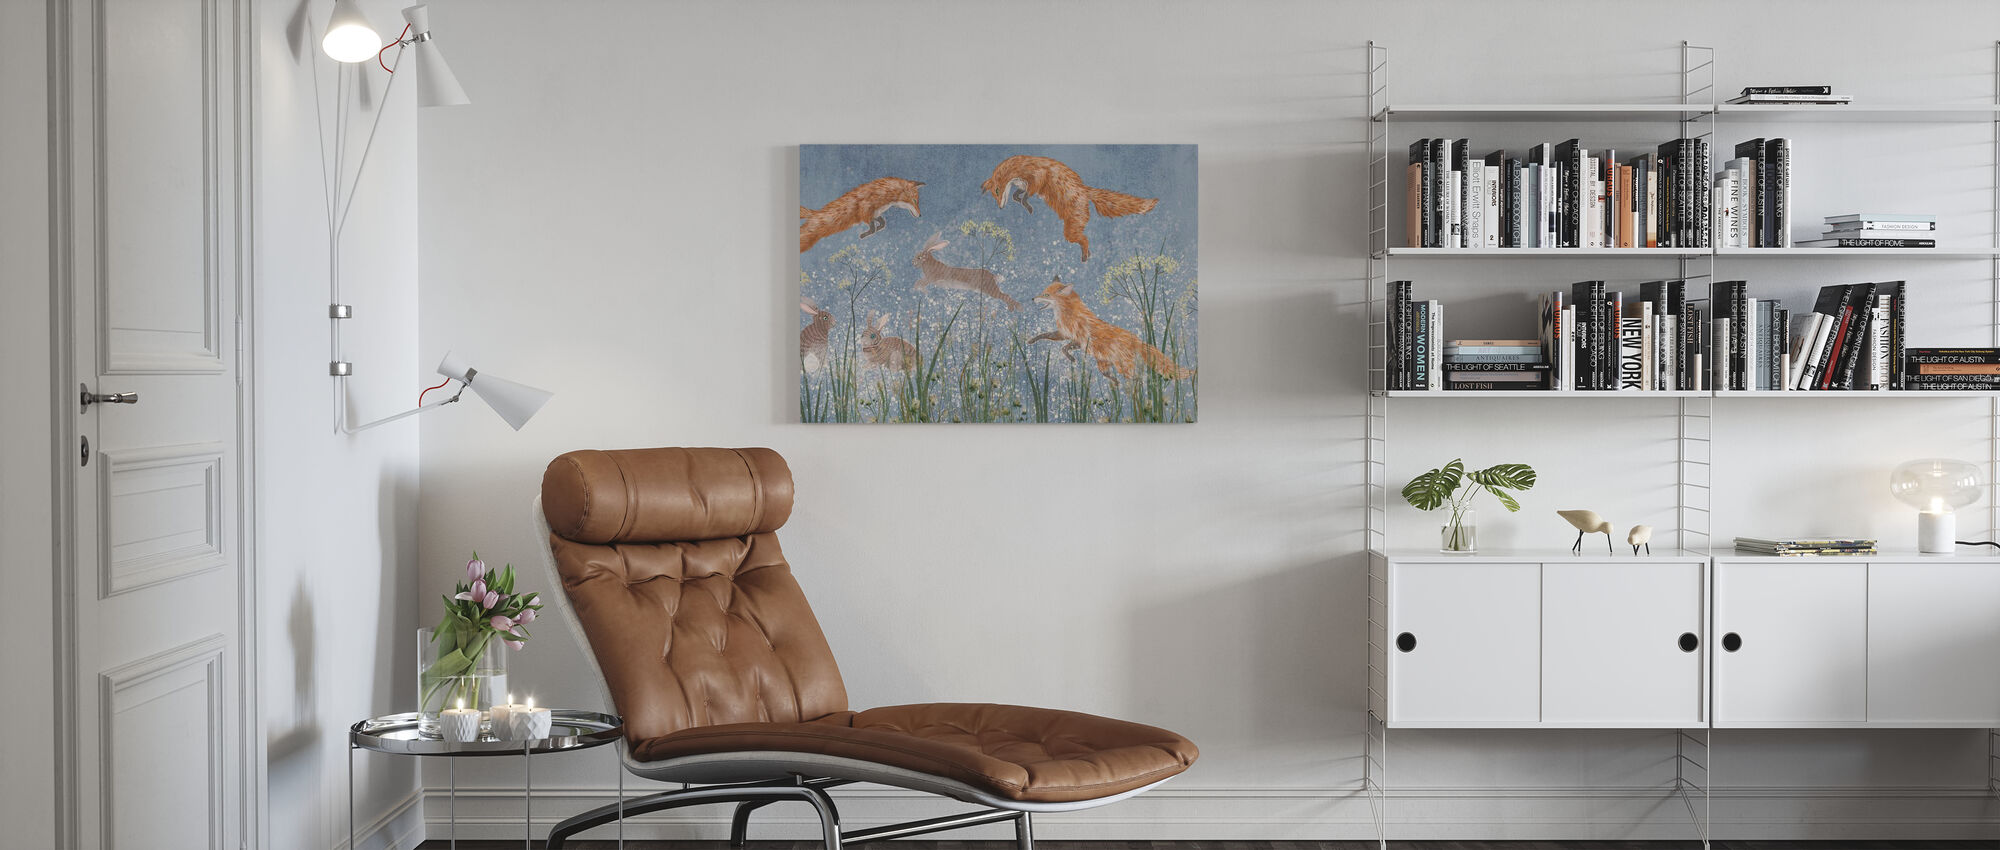 Jumping Foxes - Canvas print - Living Room